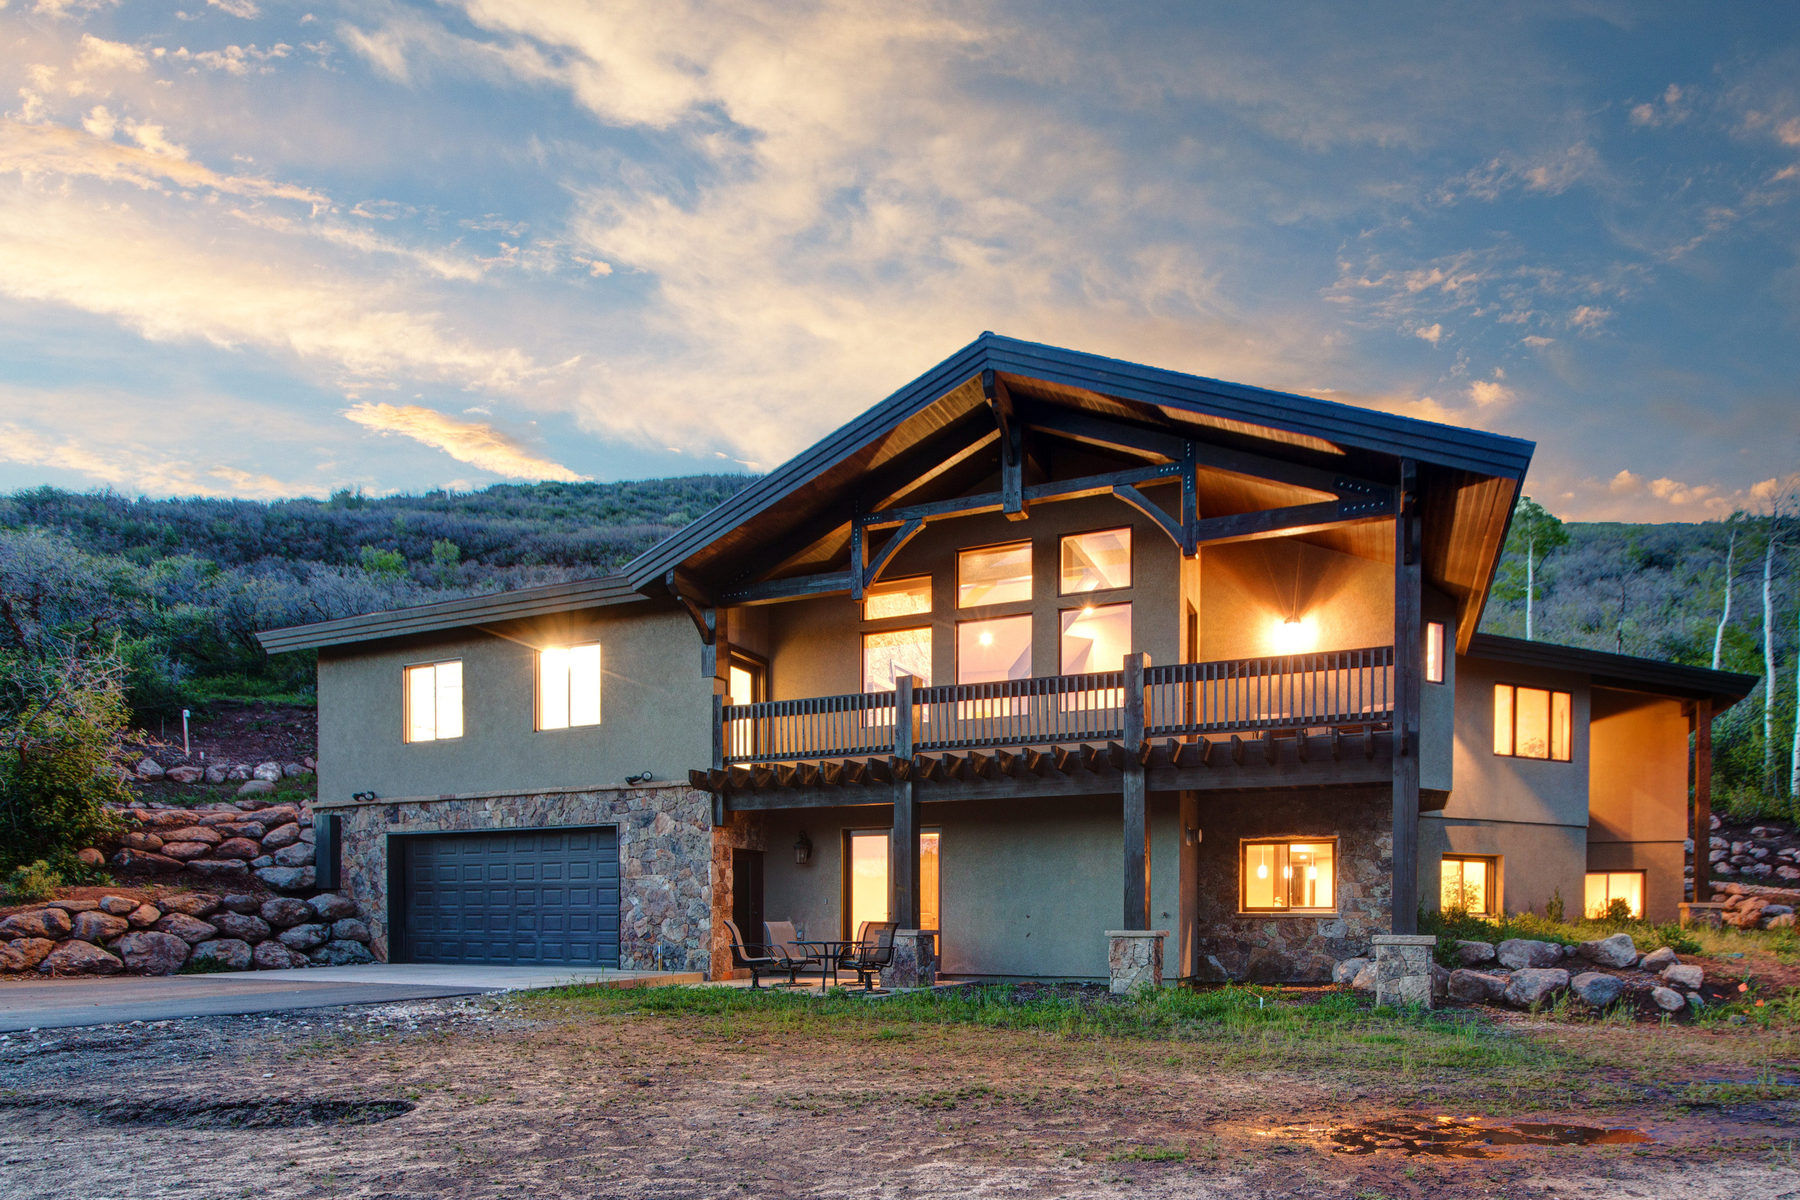 Single Family Home for Sale at Serene Living on 75+ Acres 8001 Parleys Ln Park City, Utah 84098 United States